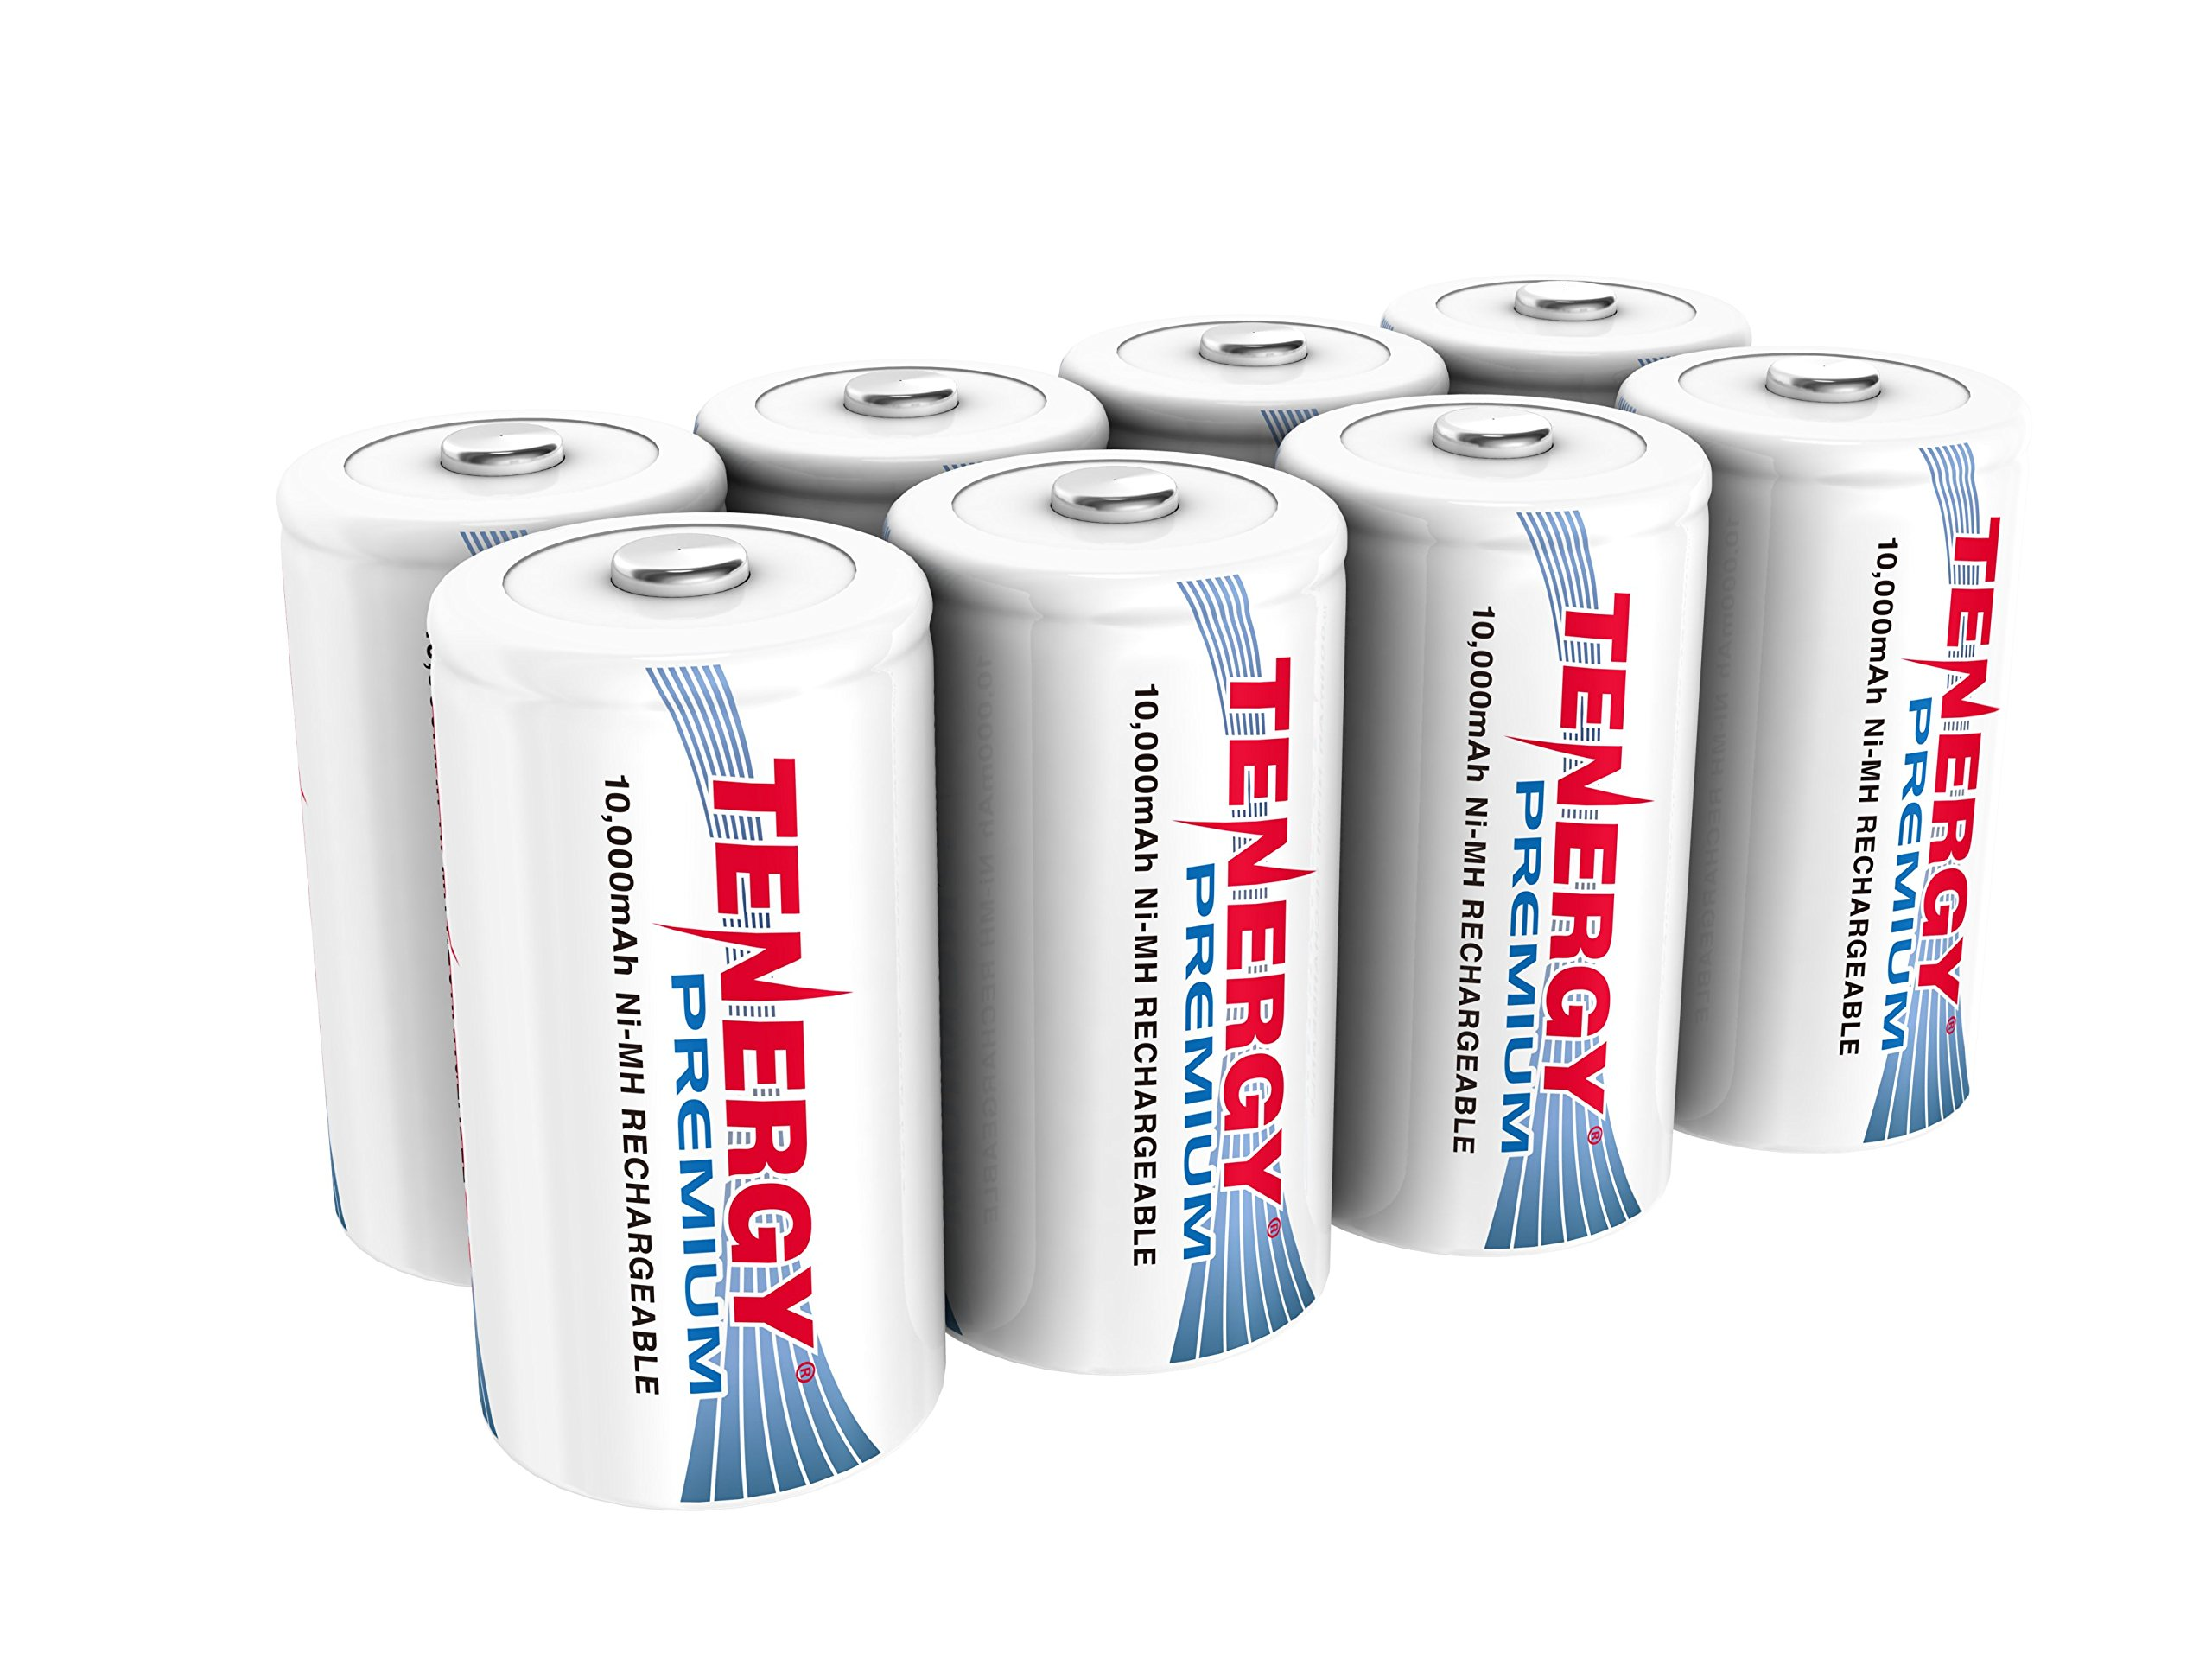 Tenergy 8 pcs of Premium D Size 10,000mAh High Capacity High Rate NiMH Rechargeable Batteries - UL Certified